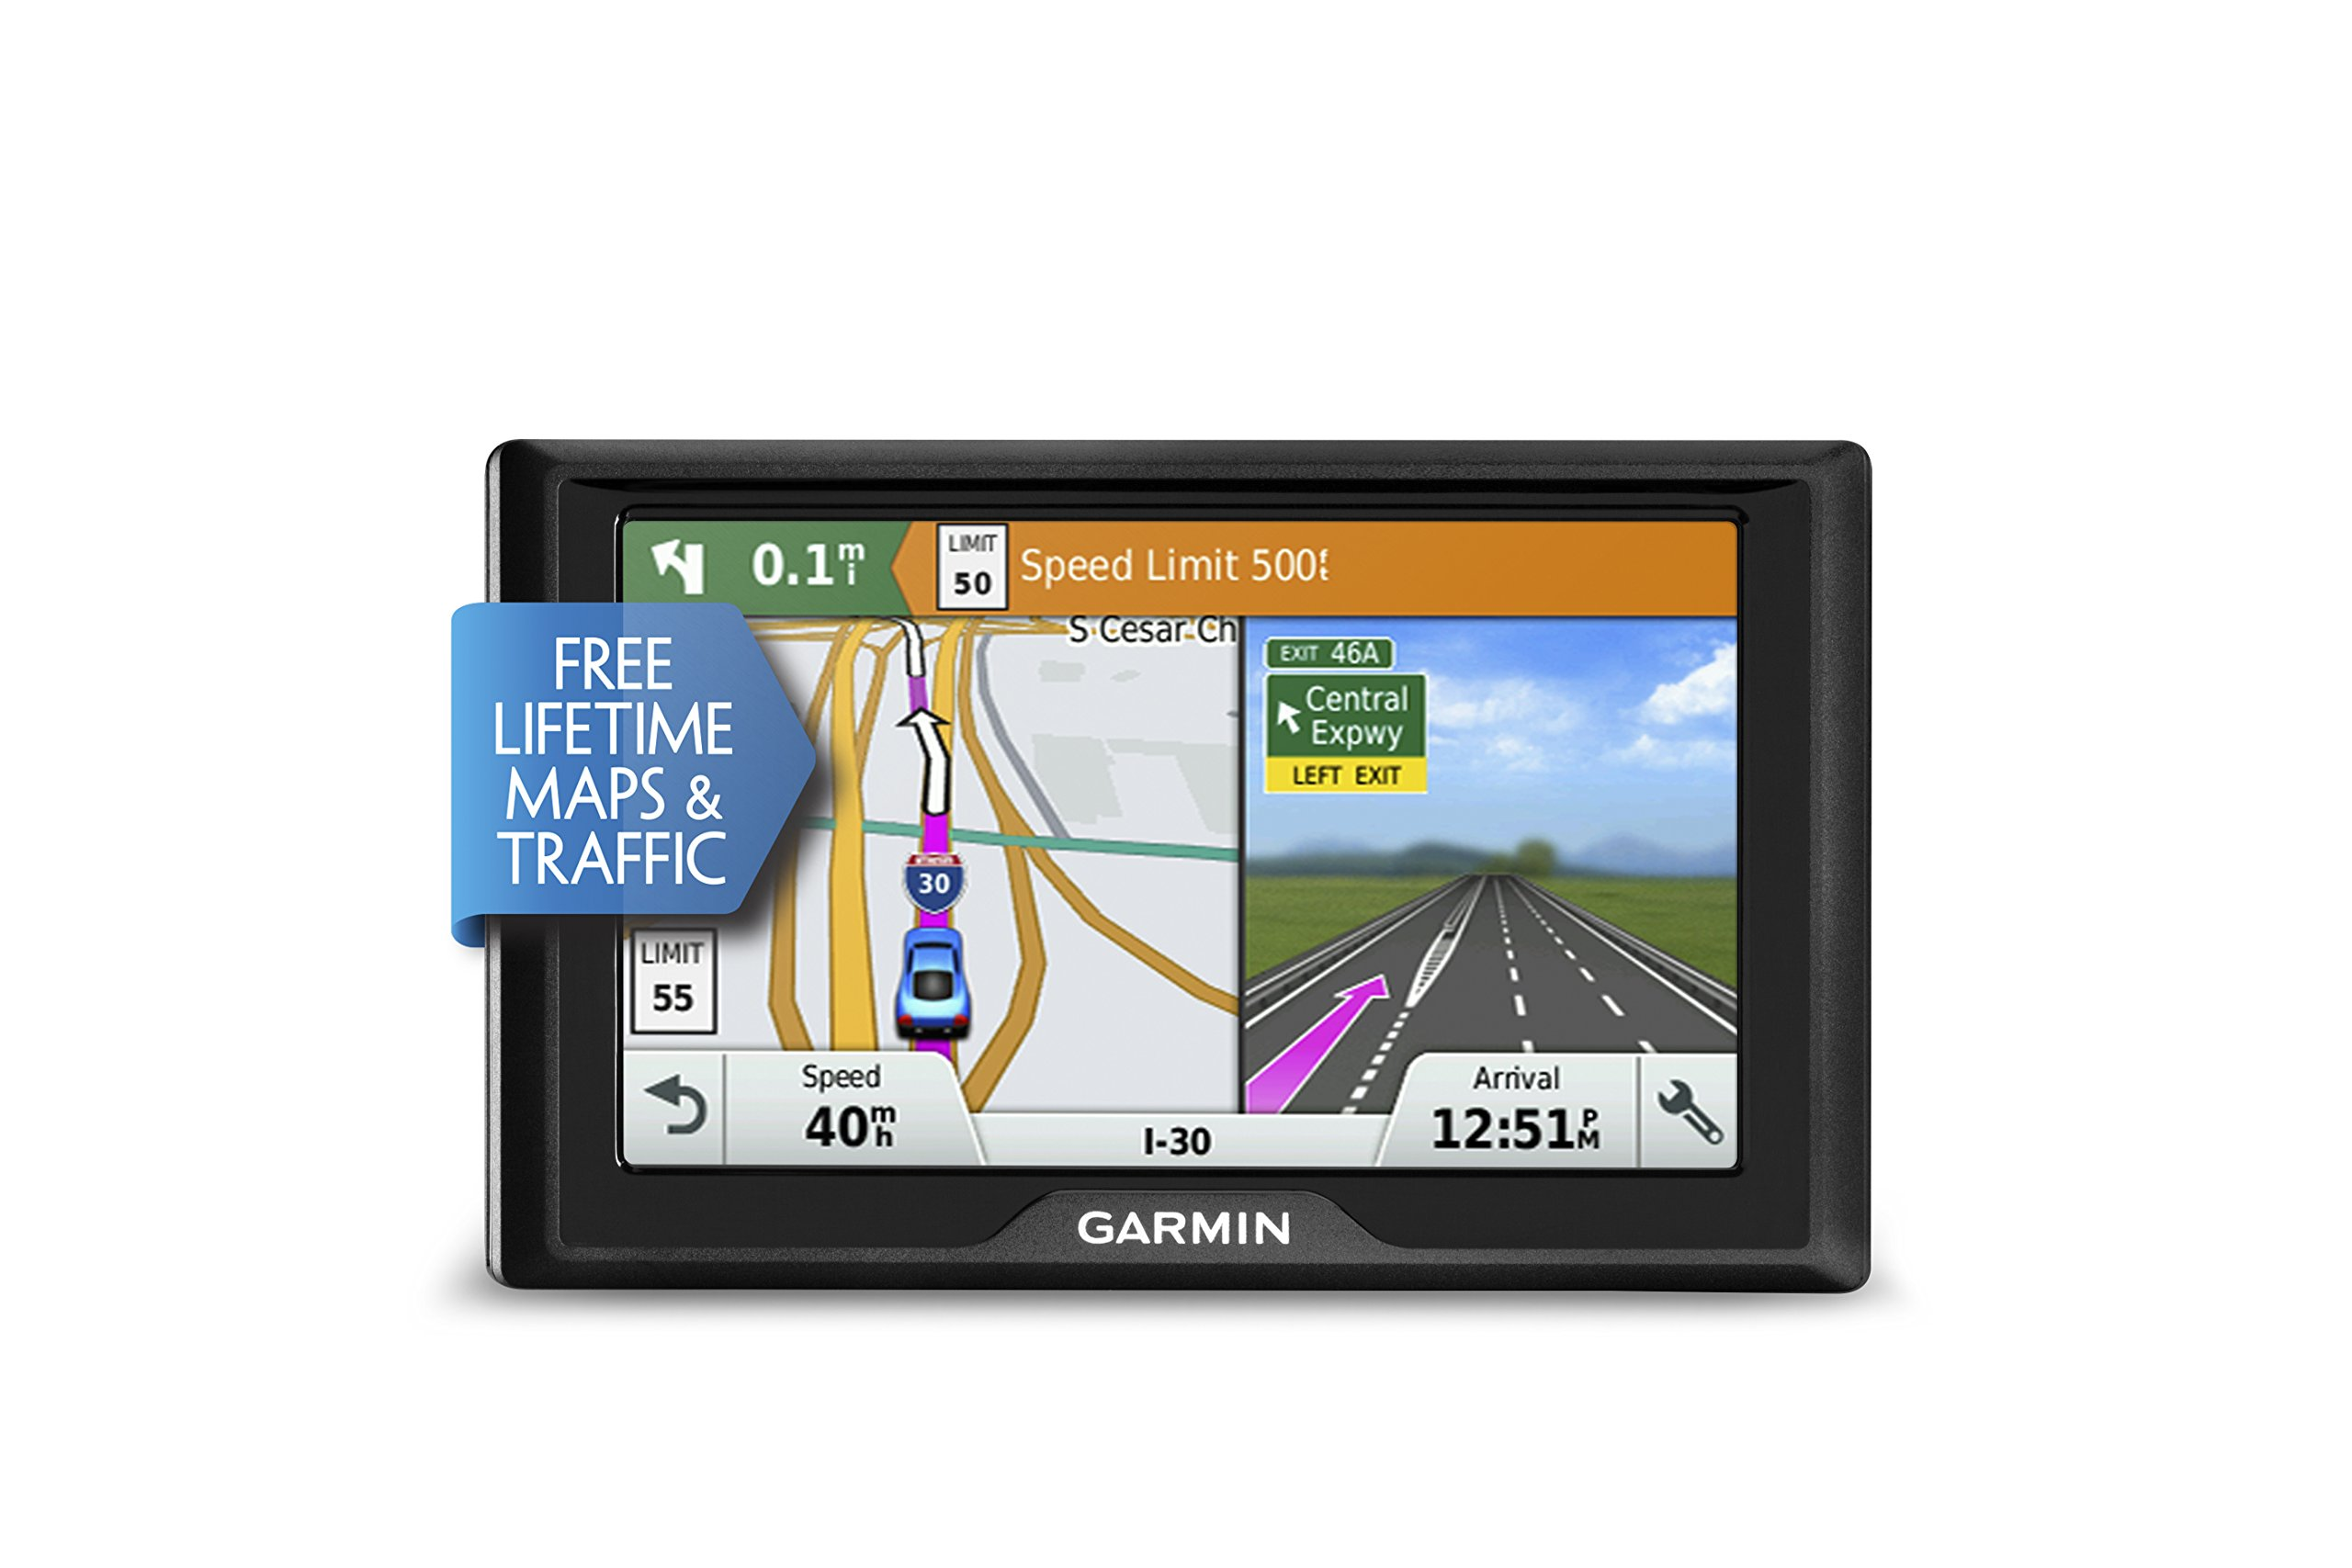 Garmin Drive 50 USA LMT GPS Navigator System with Lifetime Maps and Traffic, Driver Alerts, Direct Access, and Foursquare data by Garmin (Image #5)